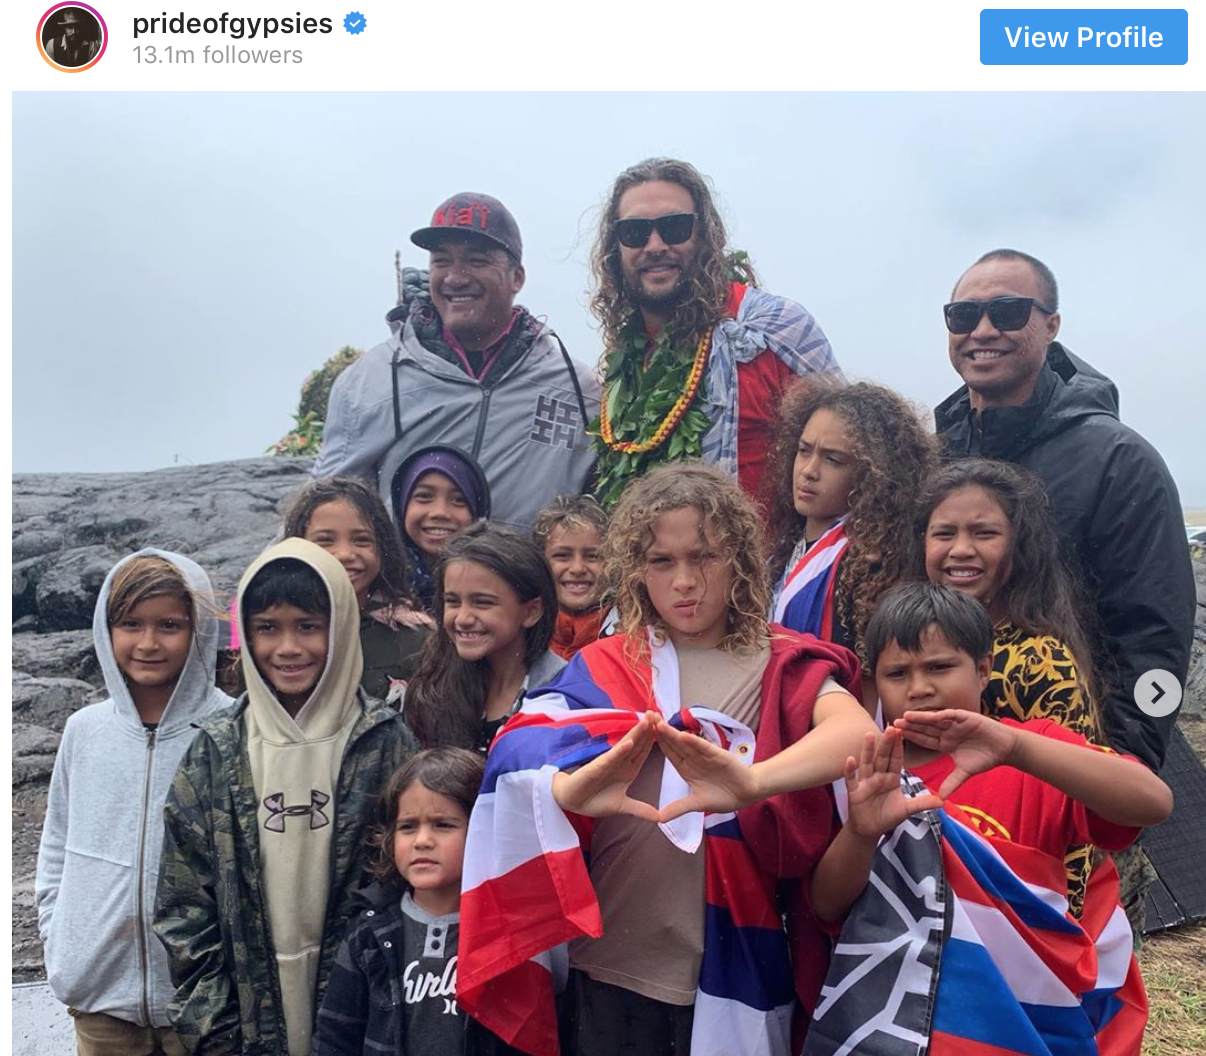 One Cool Thing: Aquaman Stands Up for Indigenous Rights in HI